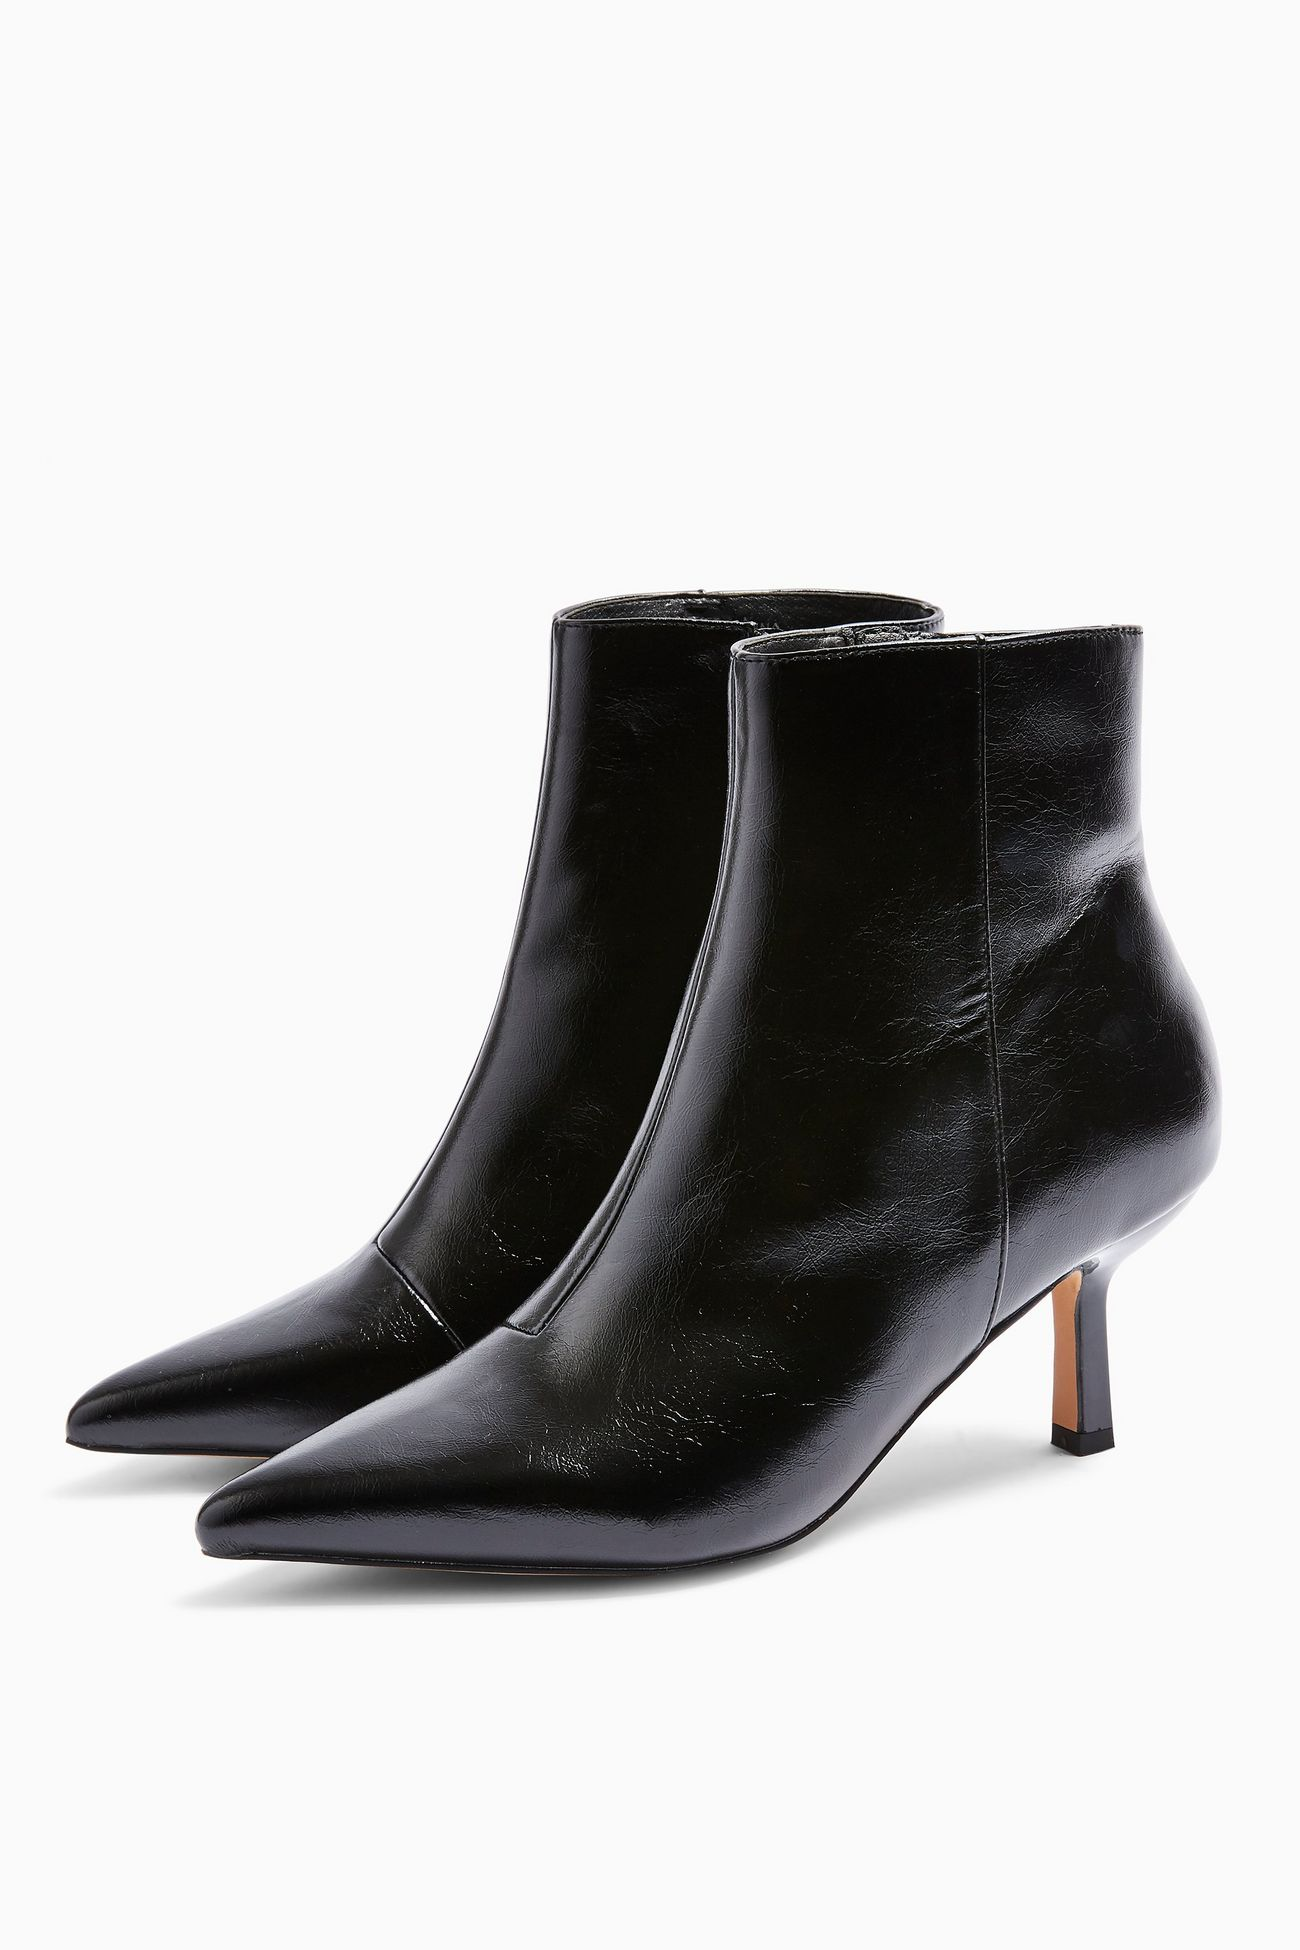 Topshop Black Point Ankle Boots £39